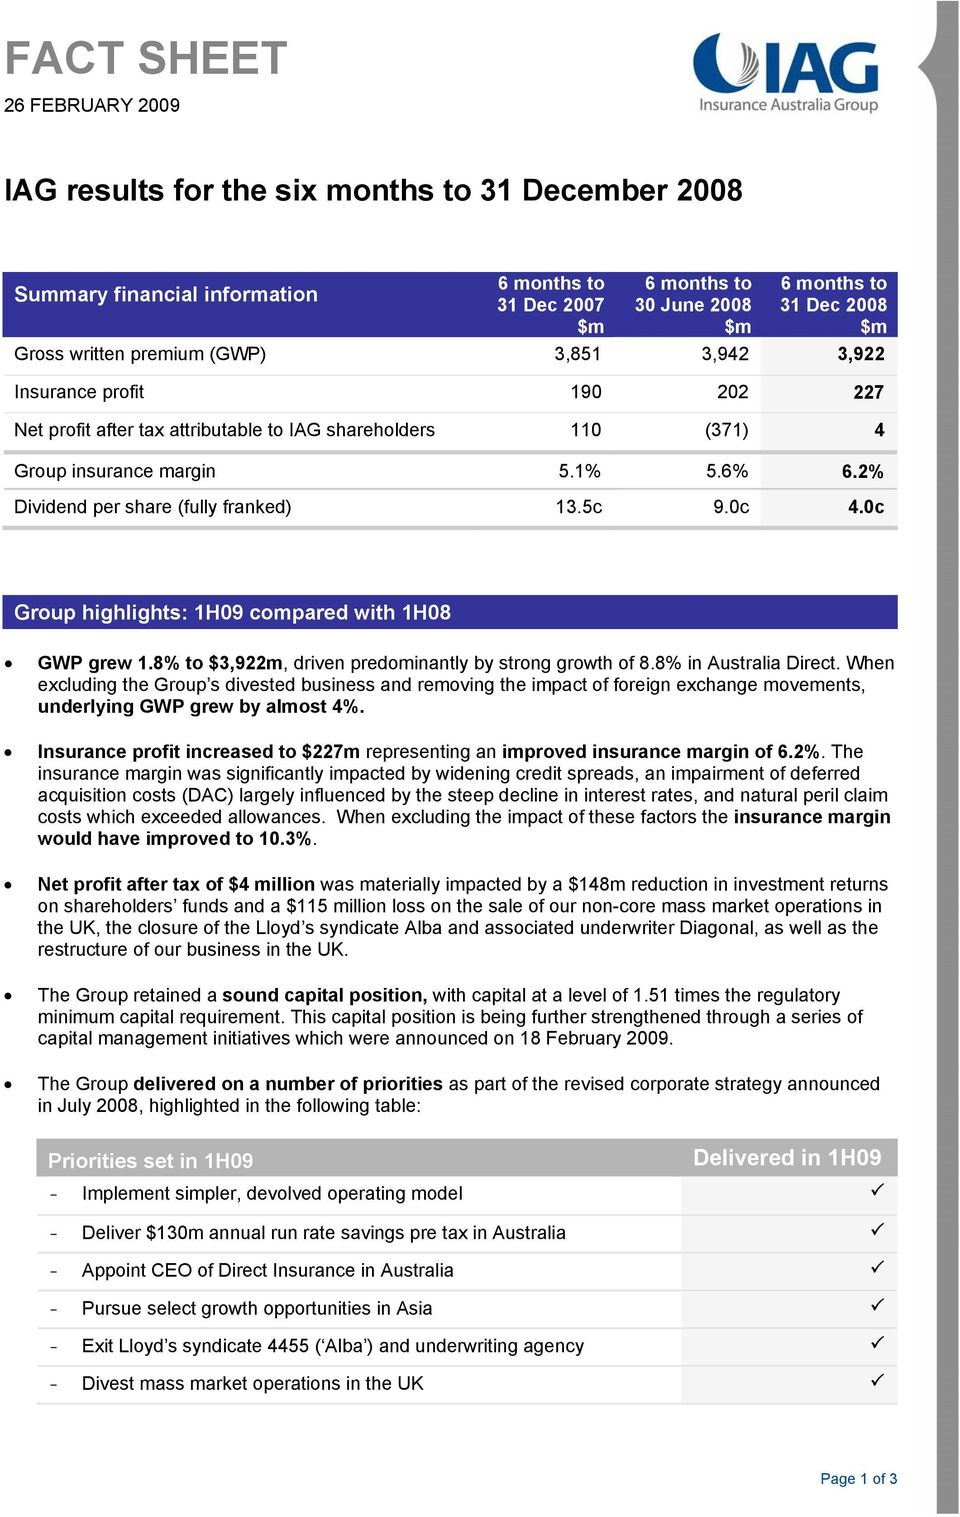 2% Dividend per share (fully franked) 13.5c 9.0c 4.0c Group highlights: 1H09 compared with 1H08 GWP grew 1.8% to $3,922m, driven predominantly by strong growth of 8.8% in Australia Direct.